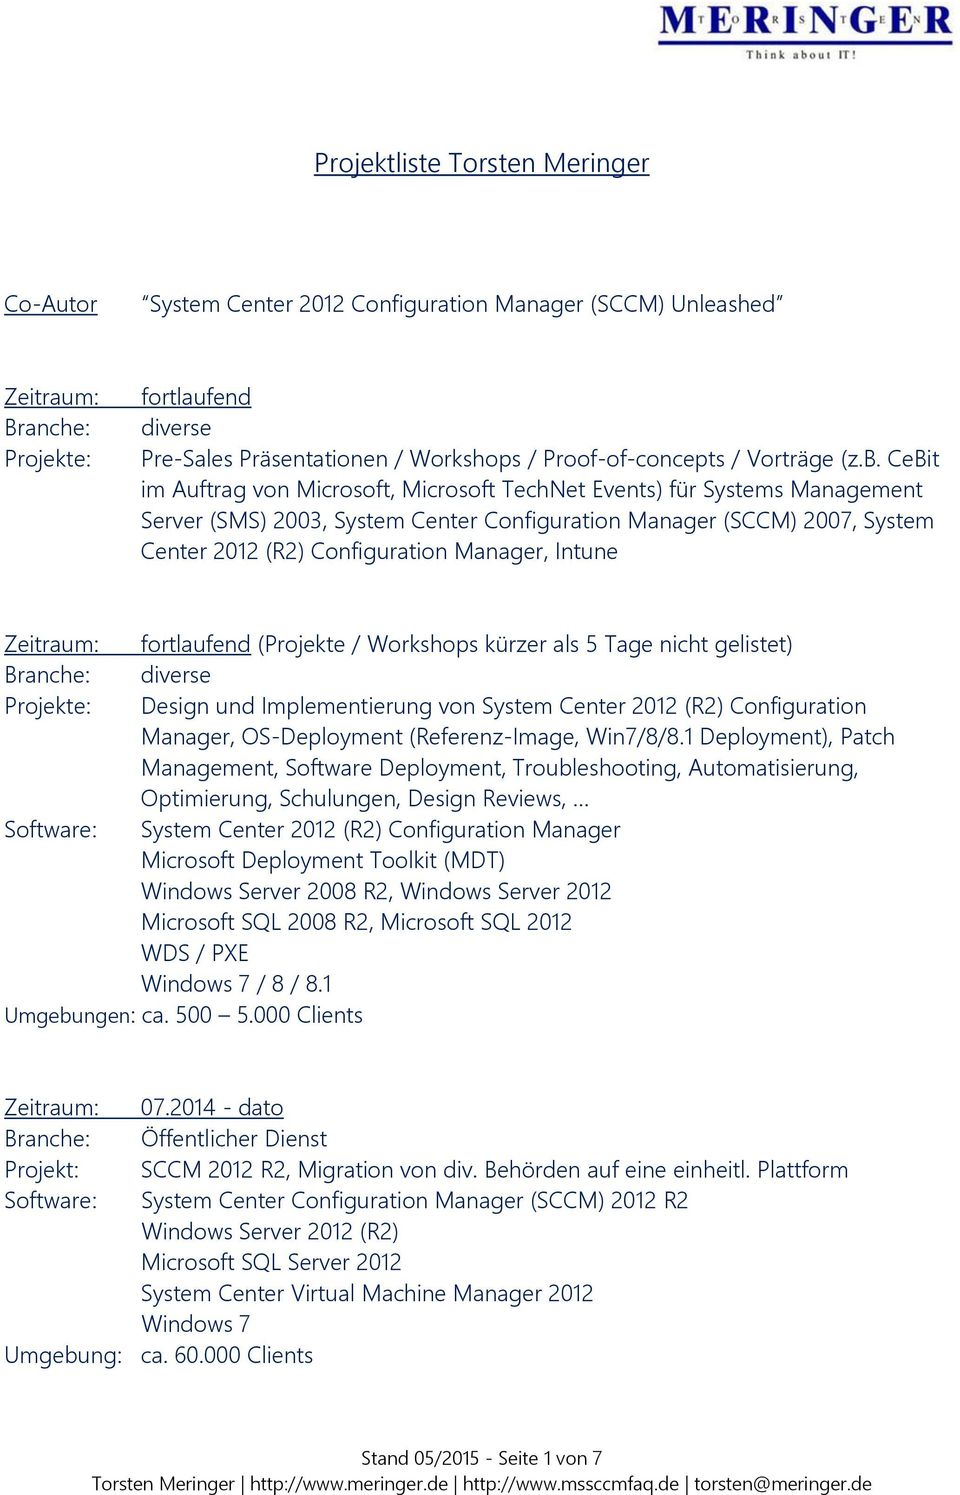 CeBit im Auftrag von Microsoft, Microsoft TechNet Events) für Systems Management Server (SMS) 2003, System Center Configuration Manager (SCCM) 2007, System Center 2012 (R2) Configuration Manager,